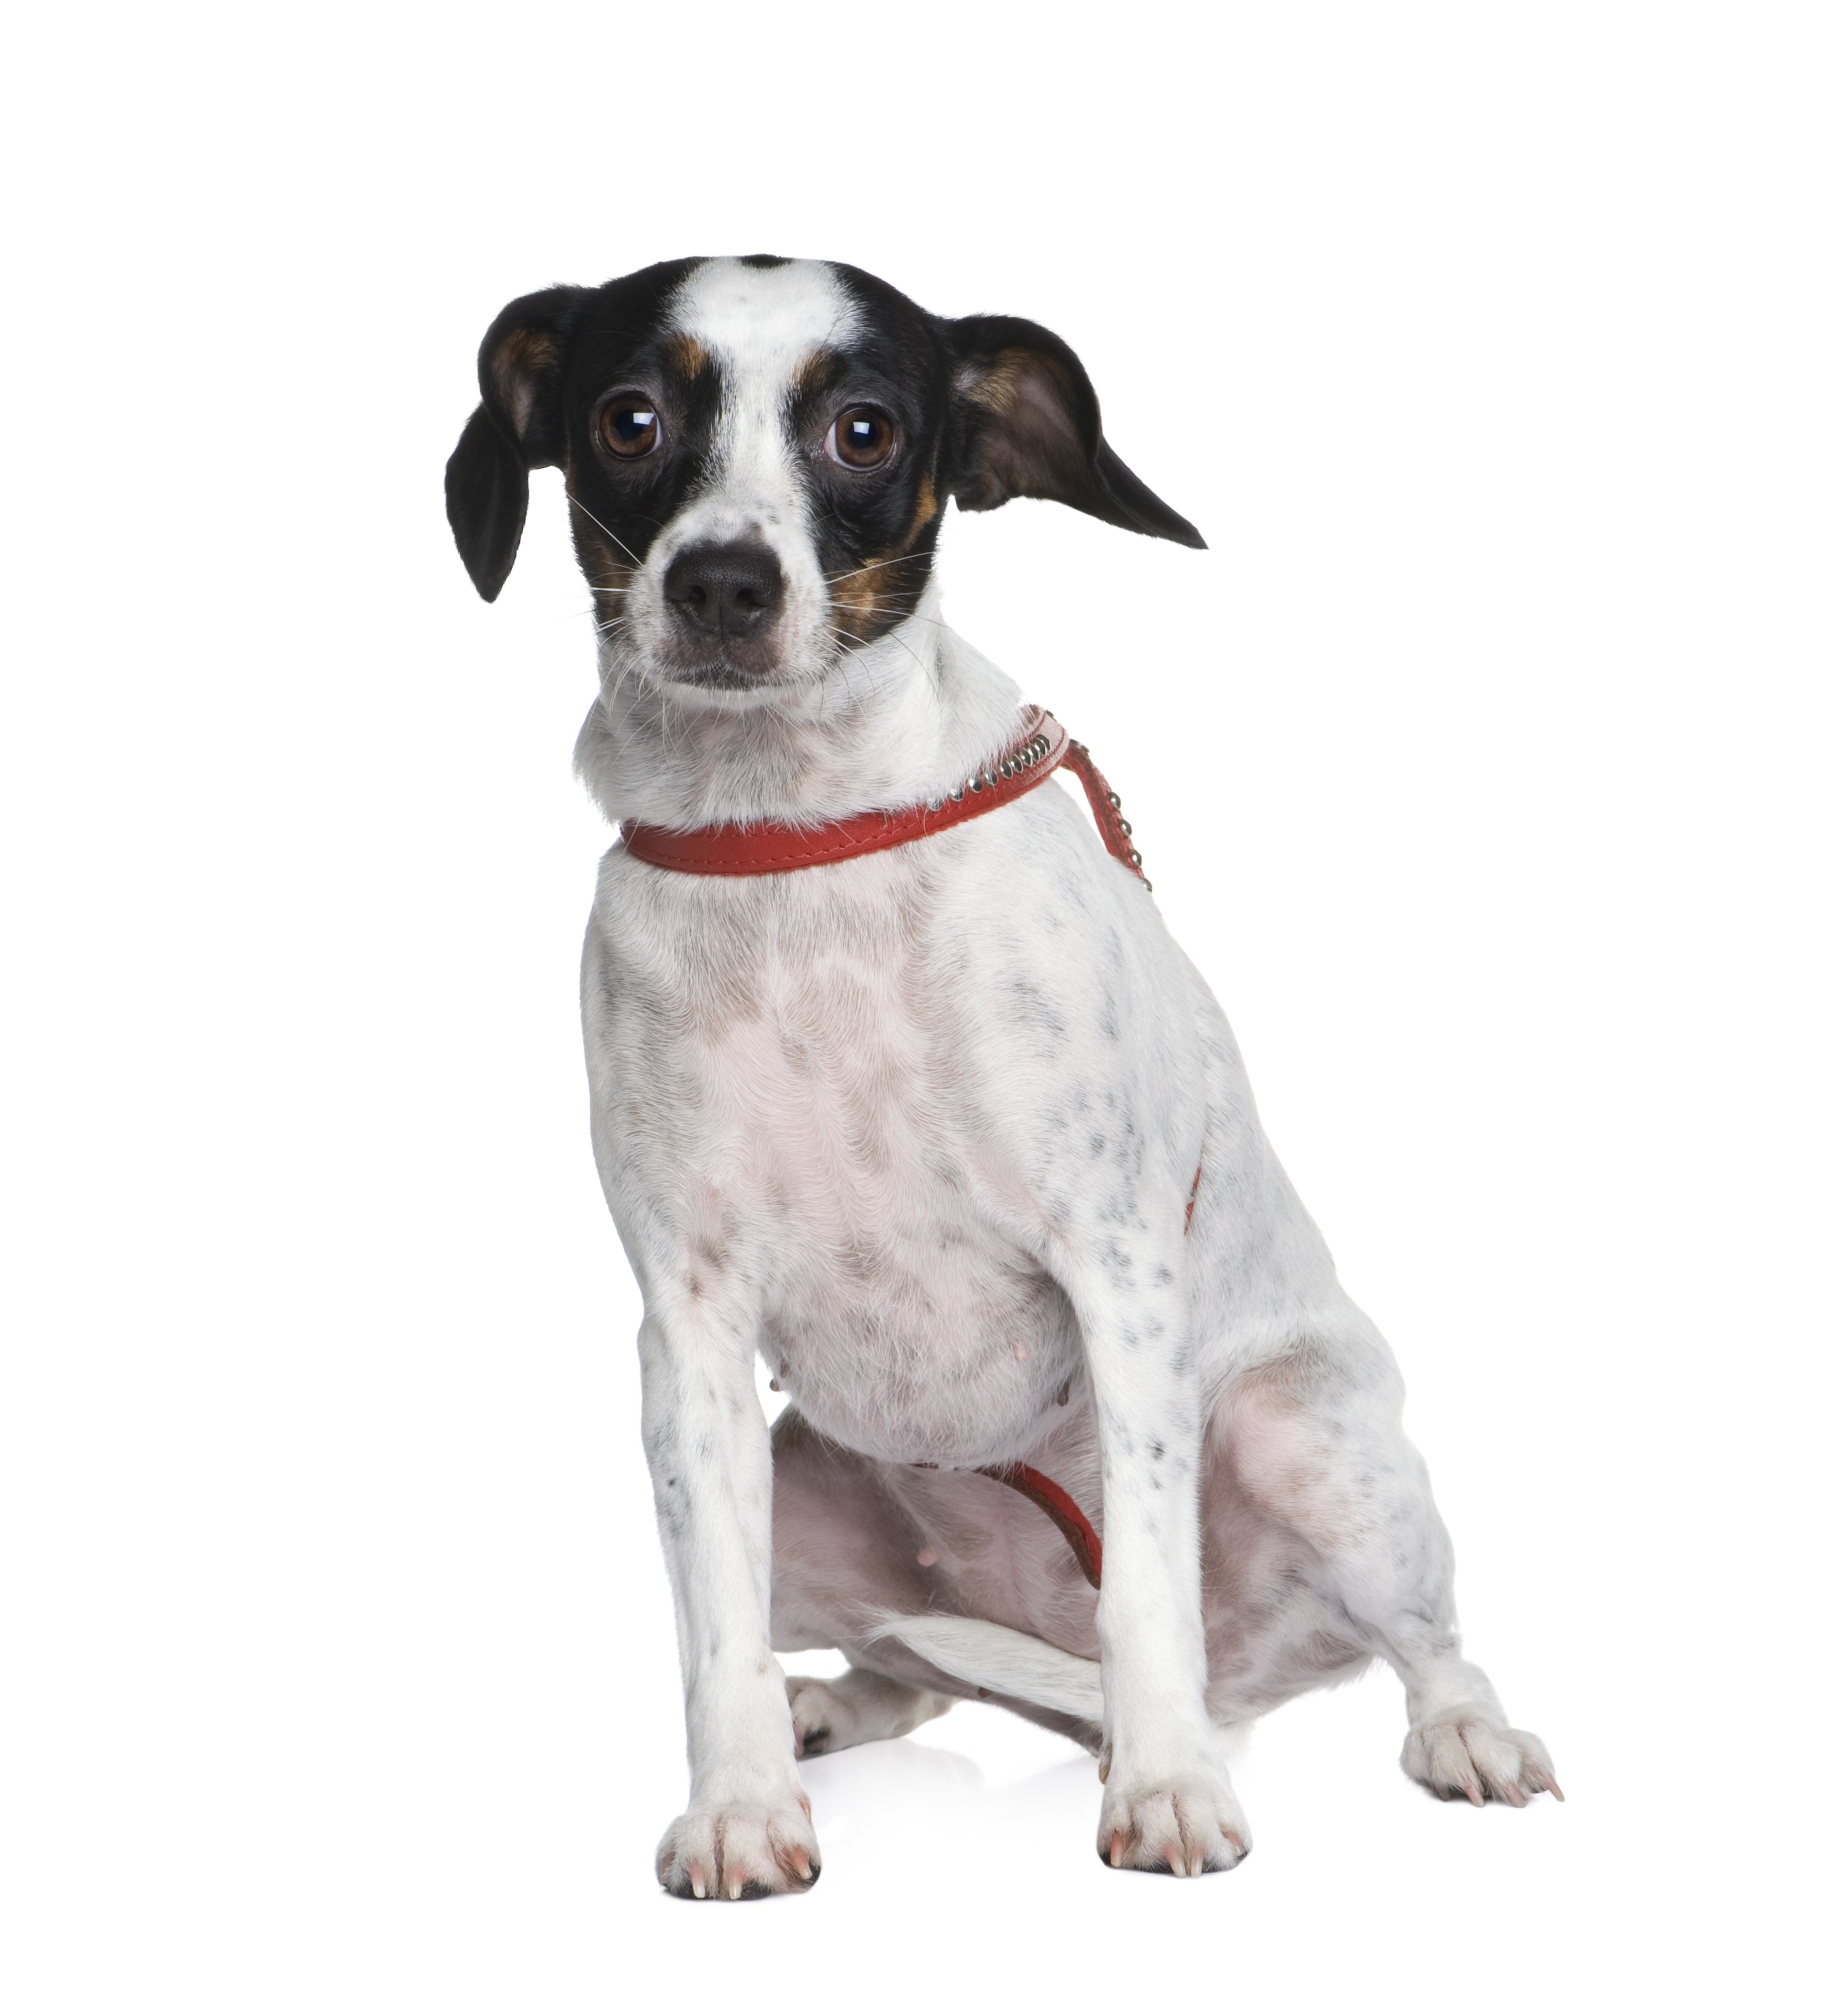 Cav-A-Jack Mixed Dog Breed Pictures